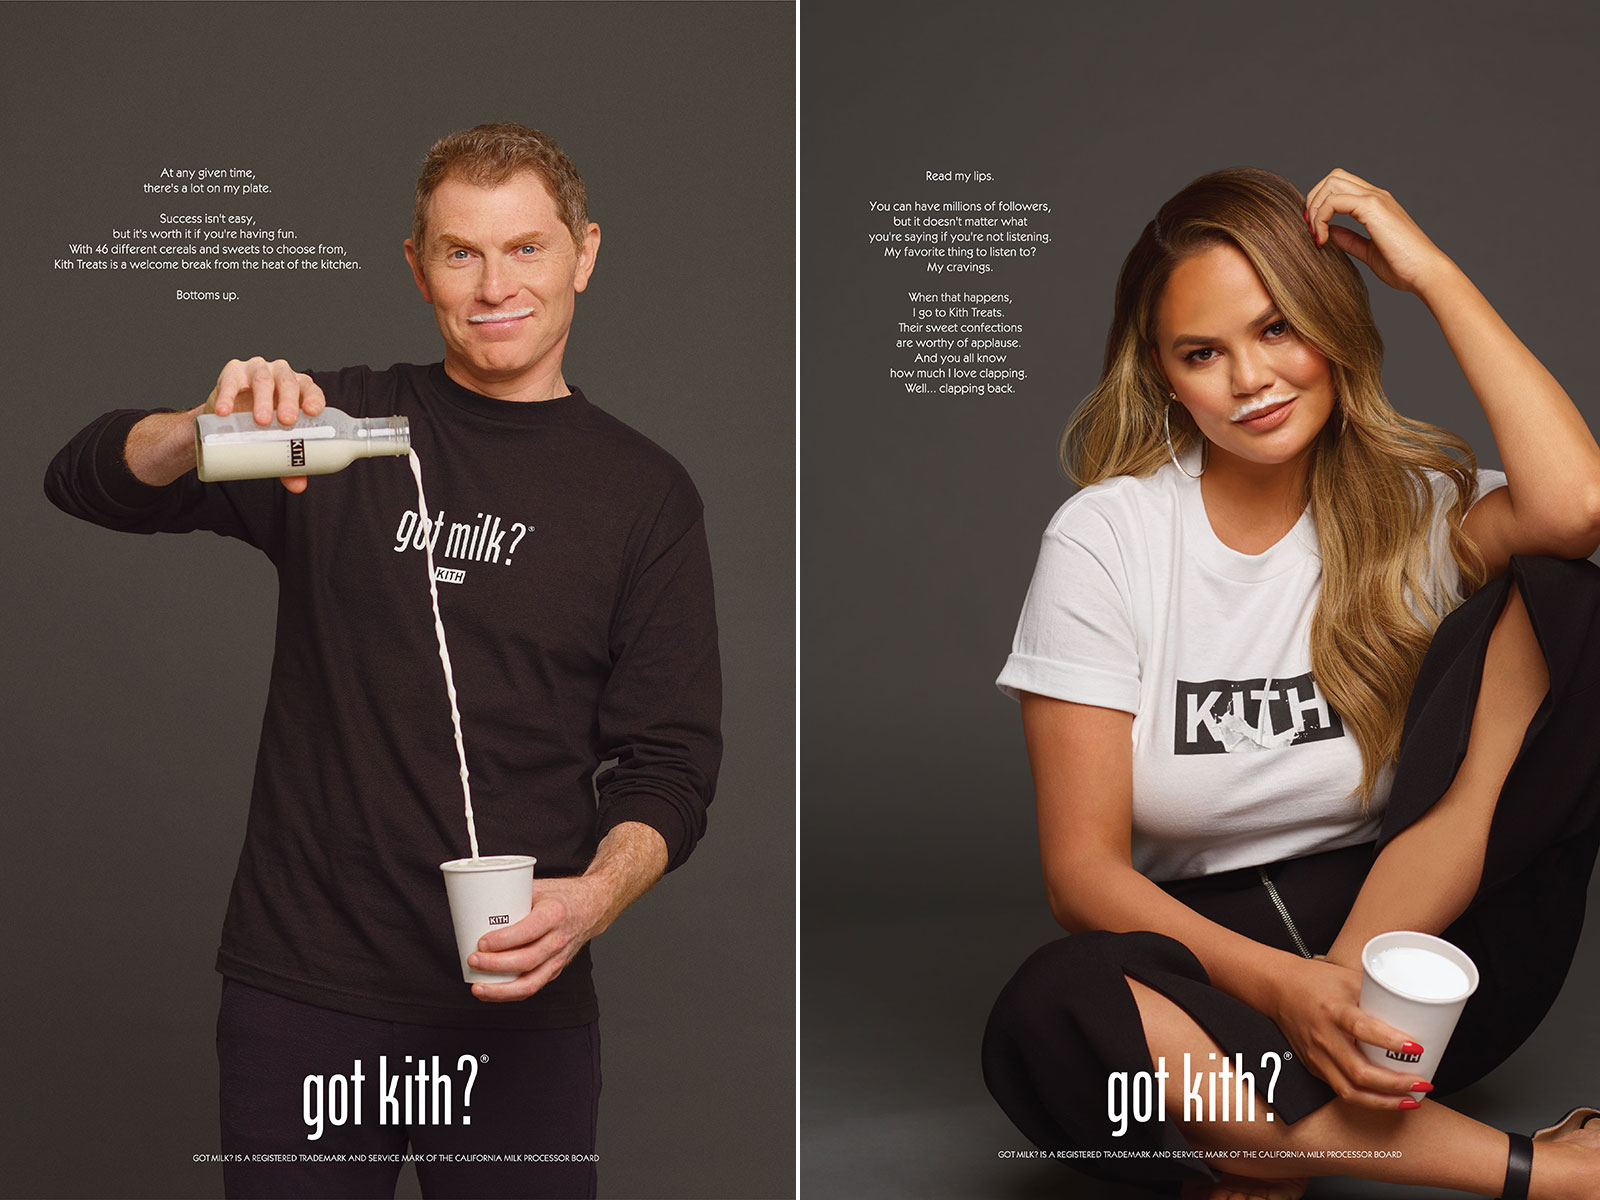 Chrissy Teigen and Bobby Flay